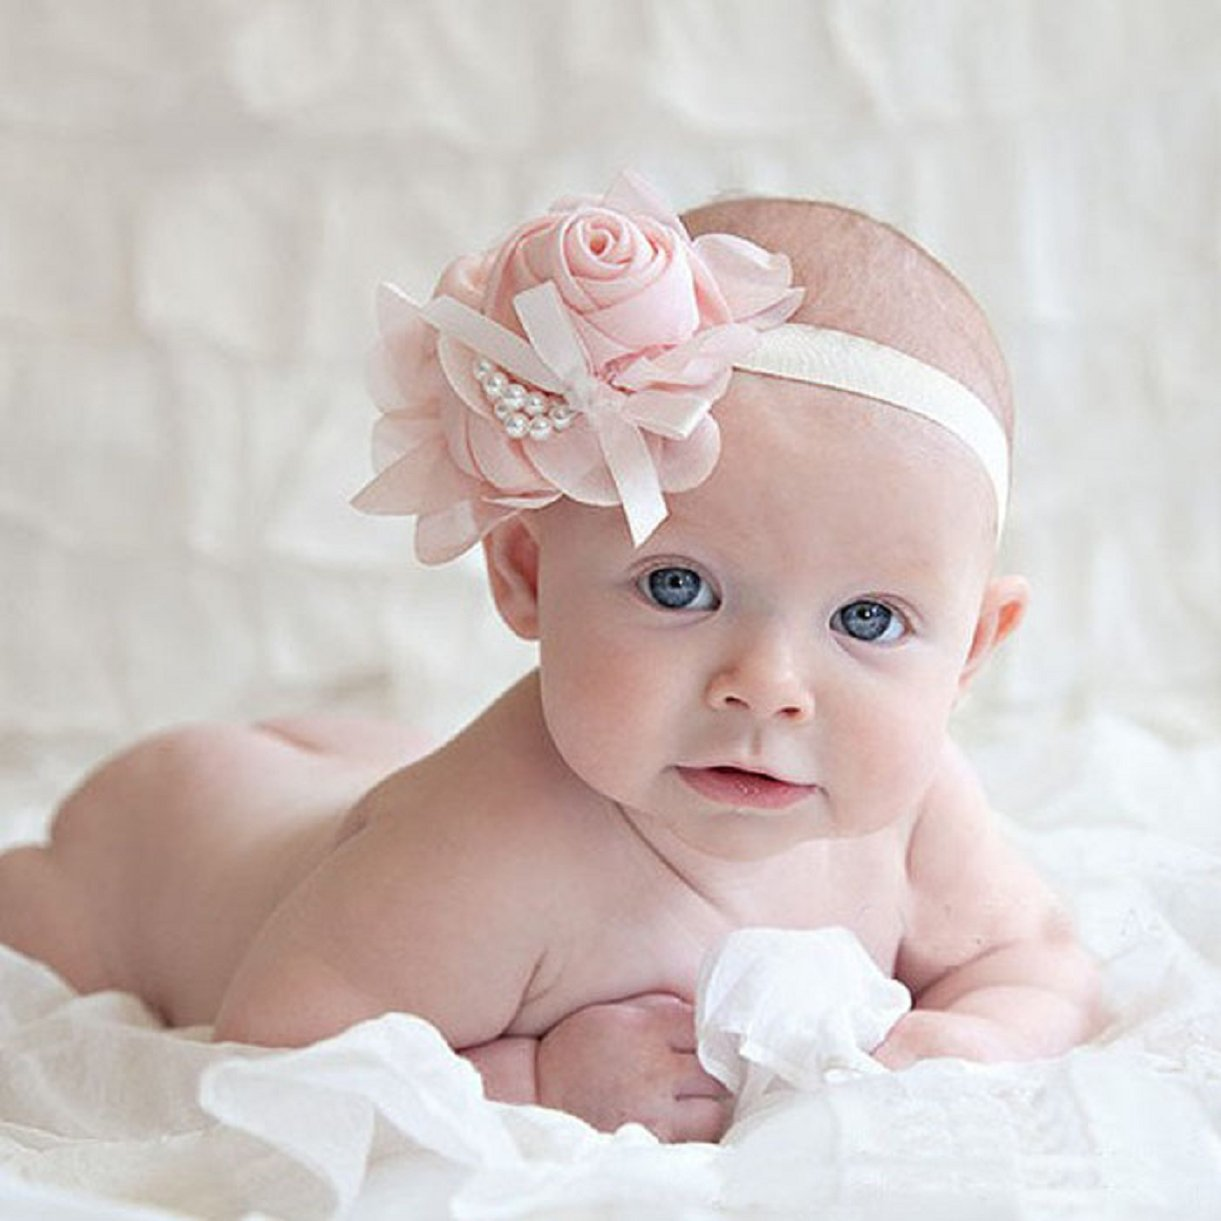 Lookatool 1PCS Lovely Rhinestone Unusual Angel Girls Baby Pearl Flowers Hairband Headbands (White)